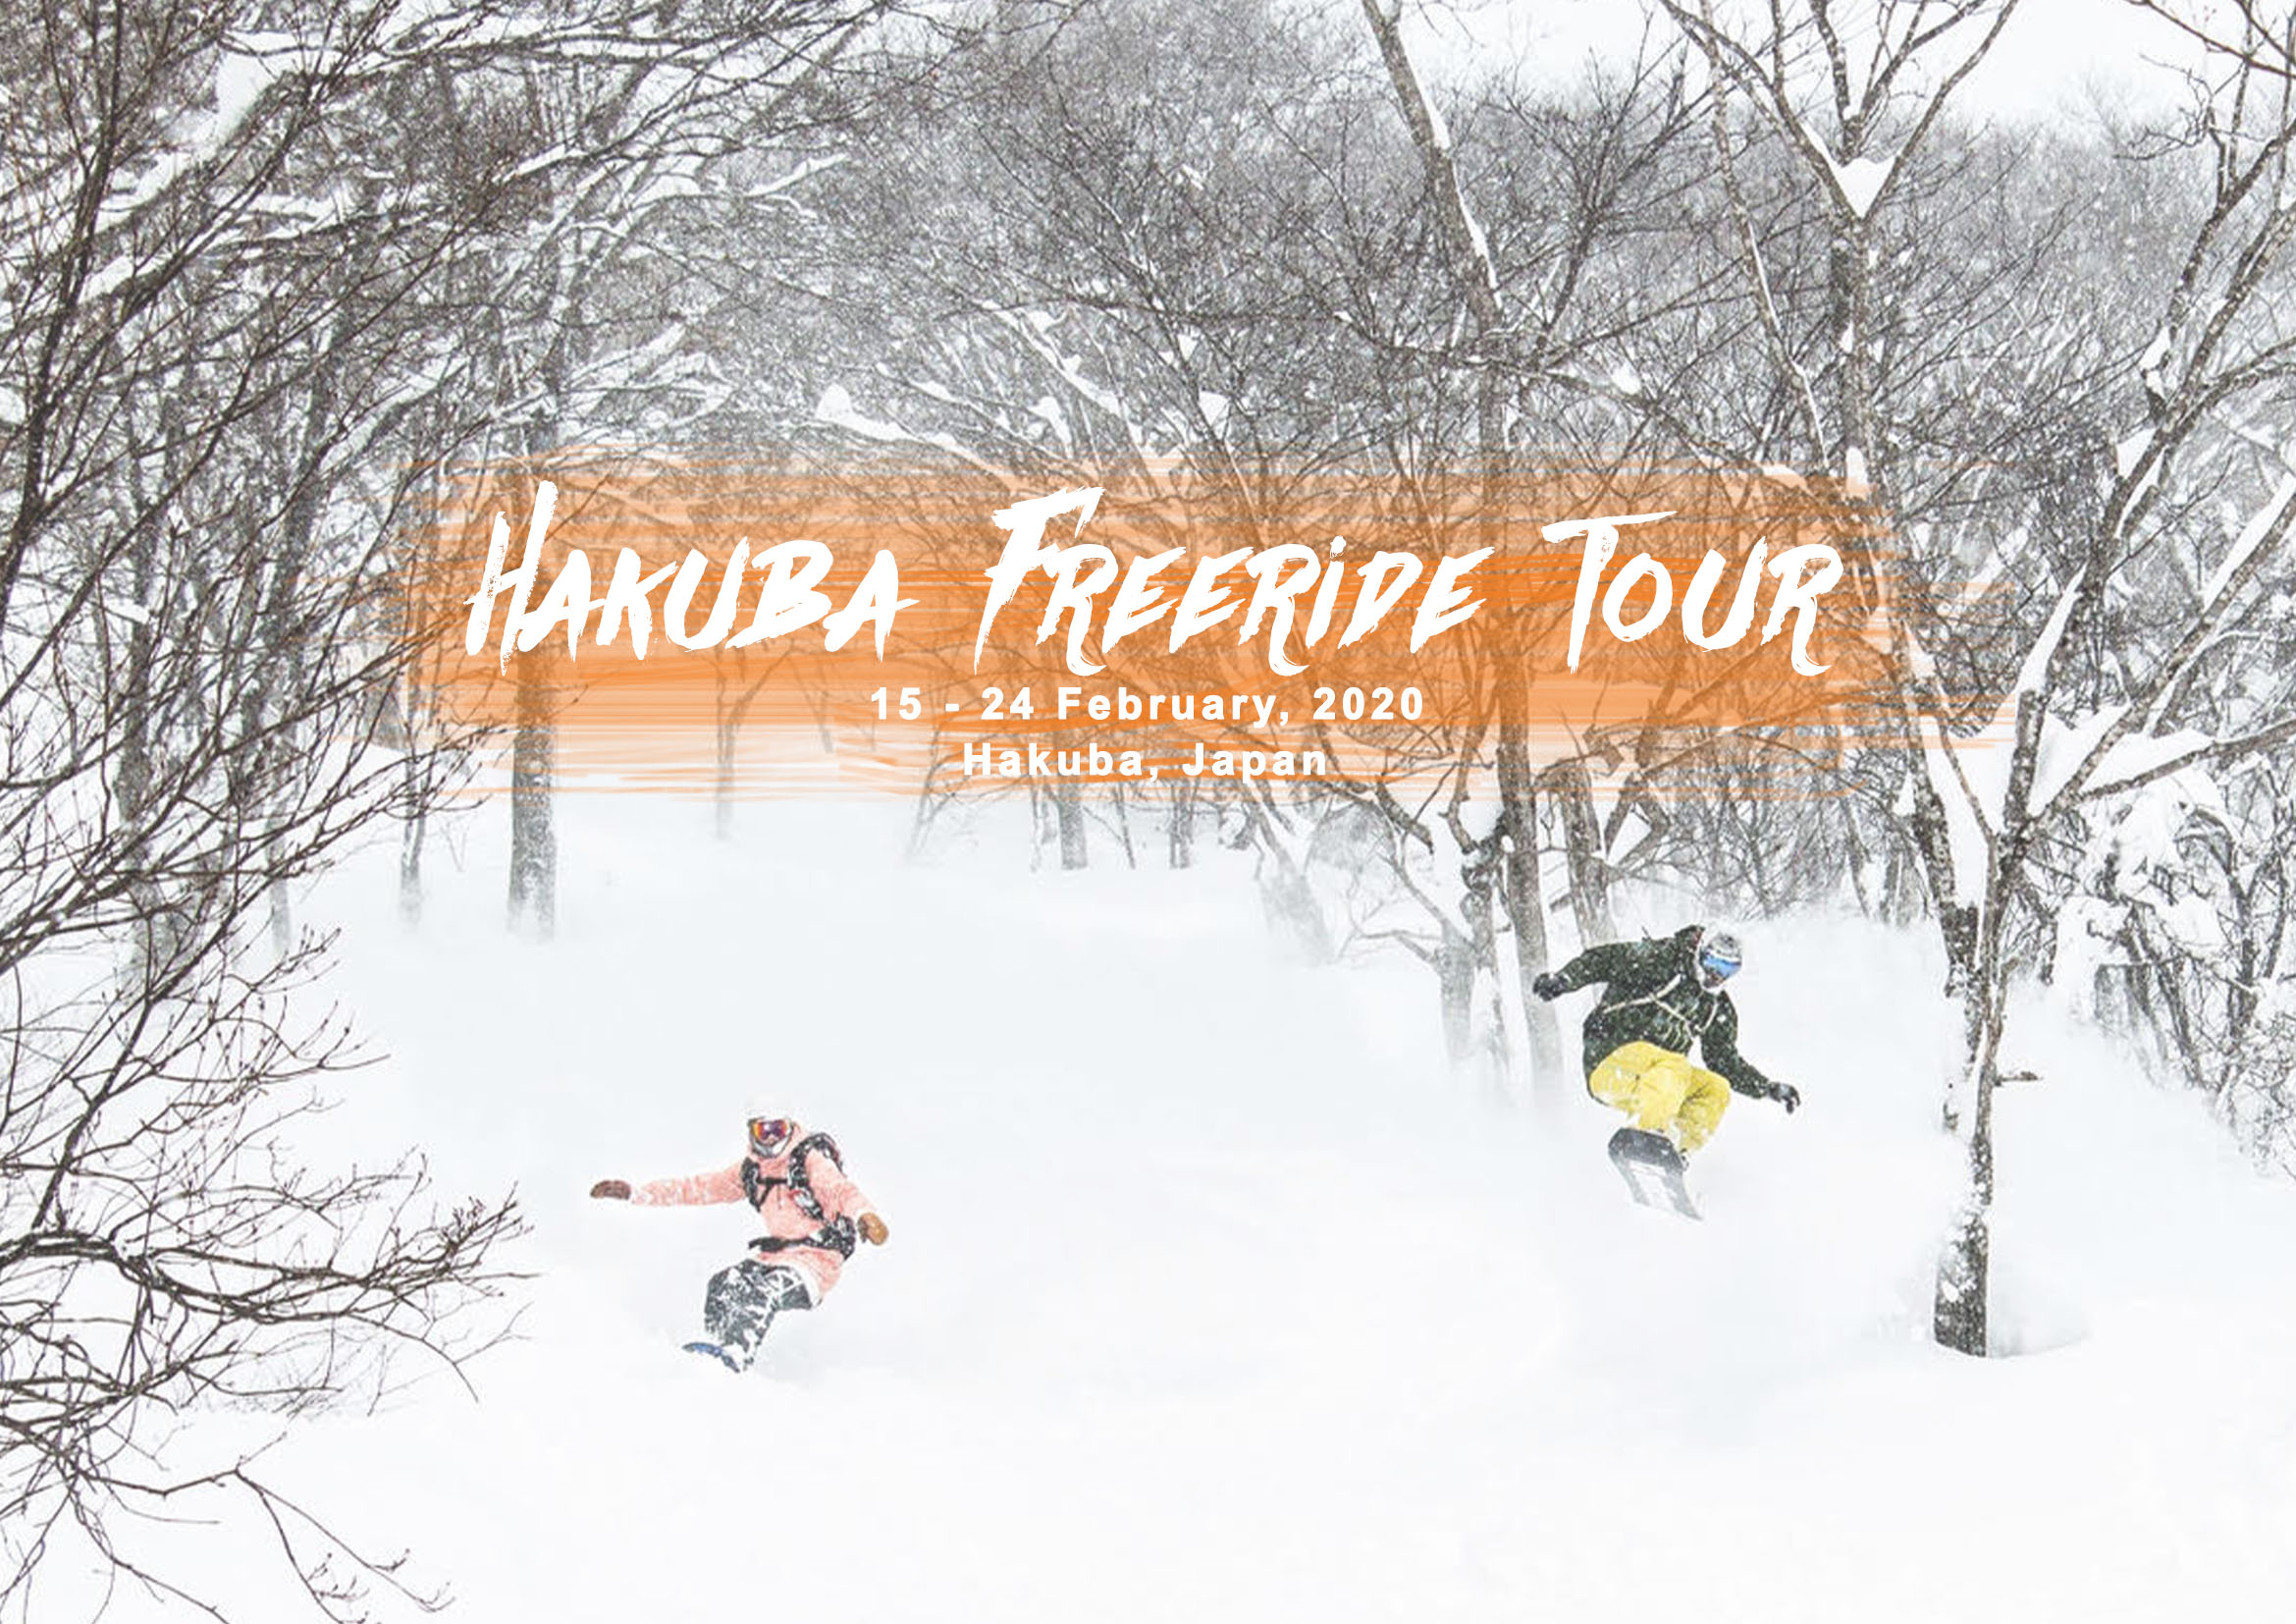 Hakuba Freeride Tour First Tours